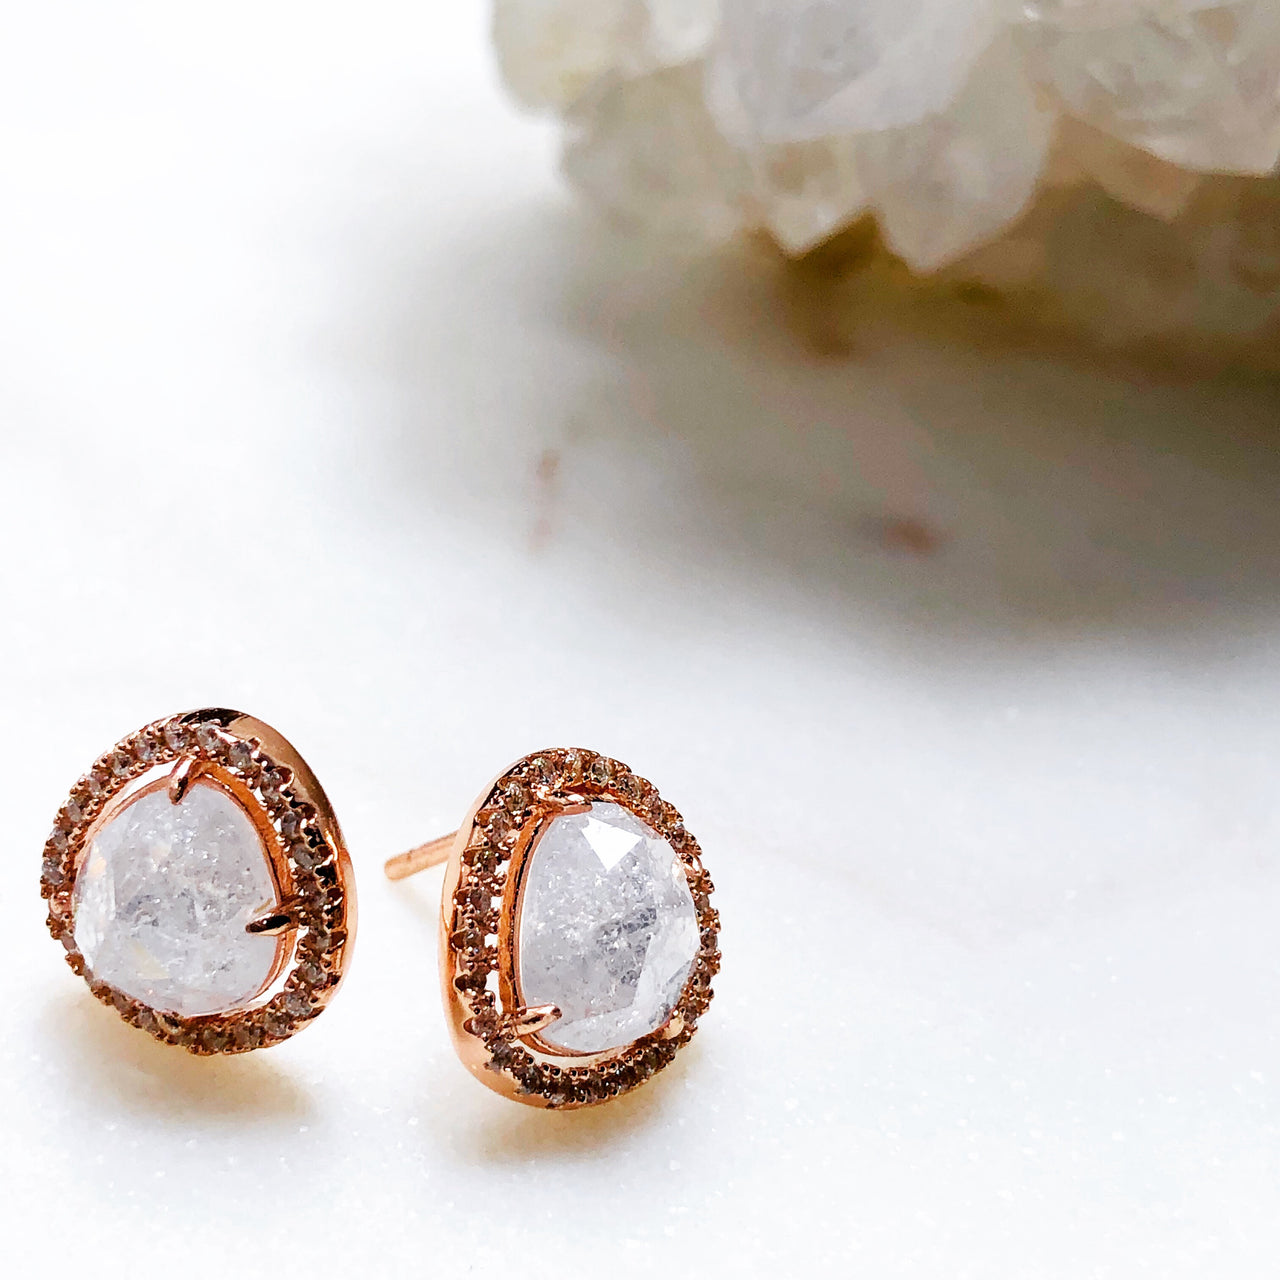 Sterling Silver/ Rose Gold Plate, Crystal & Cubic Zirconia Earrings.